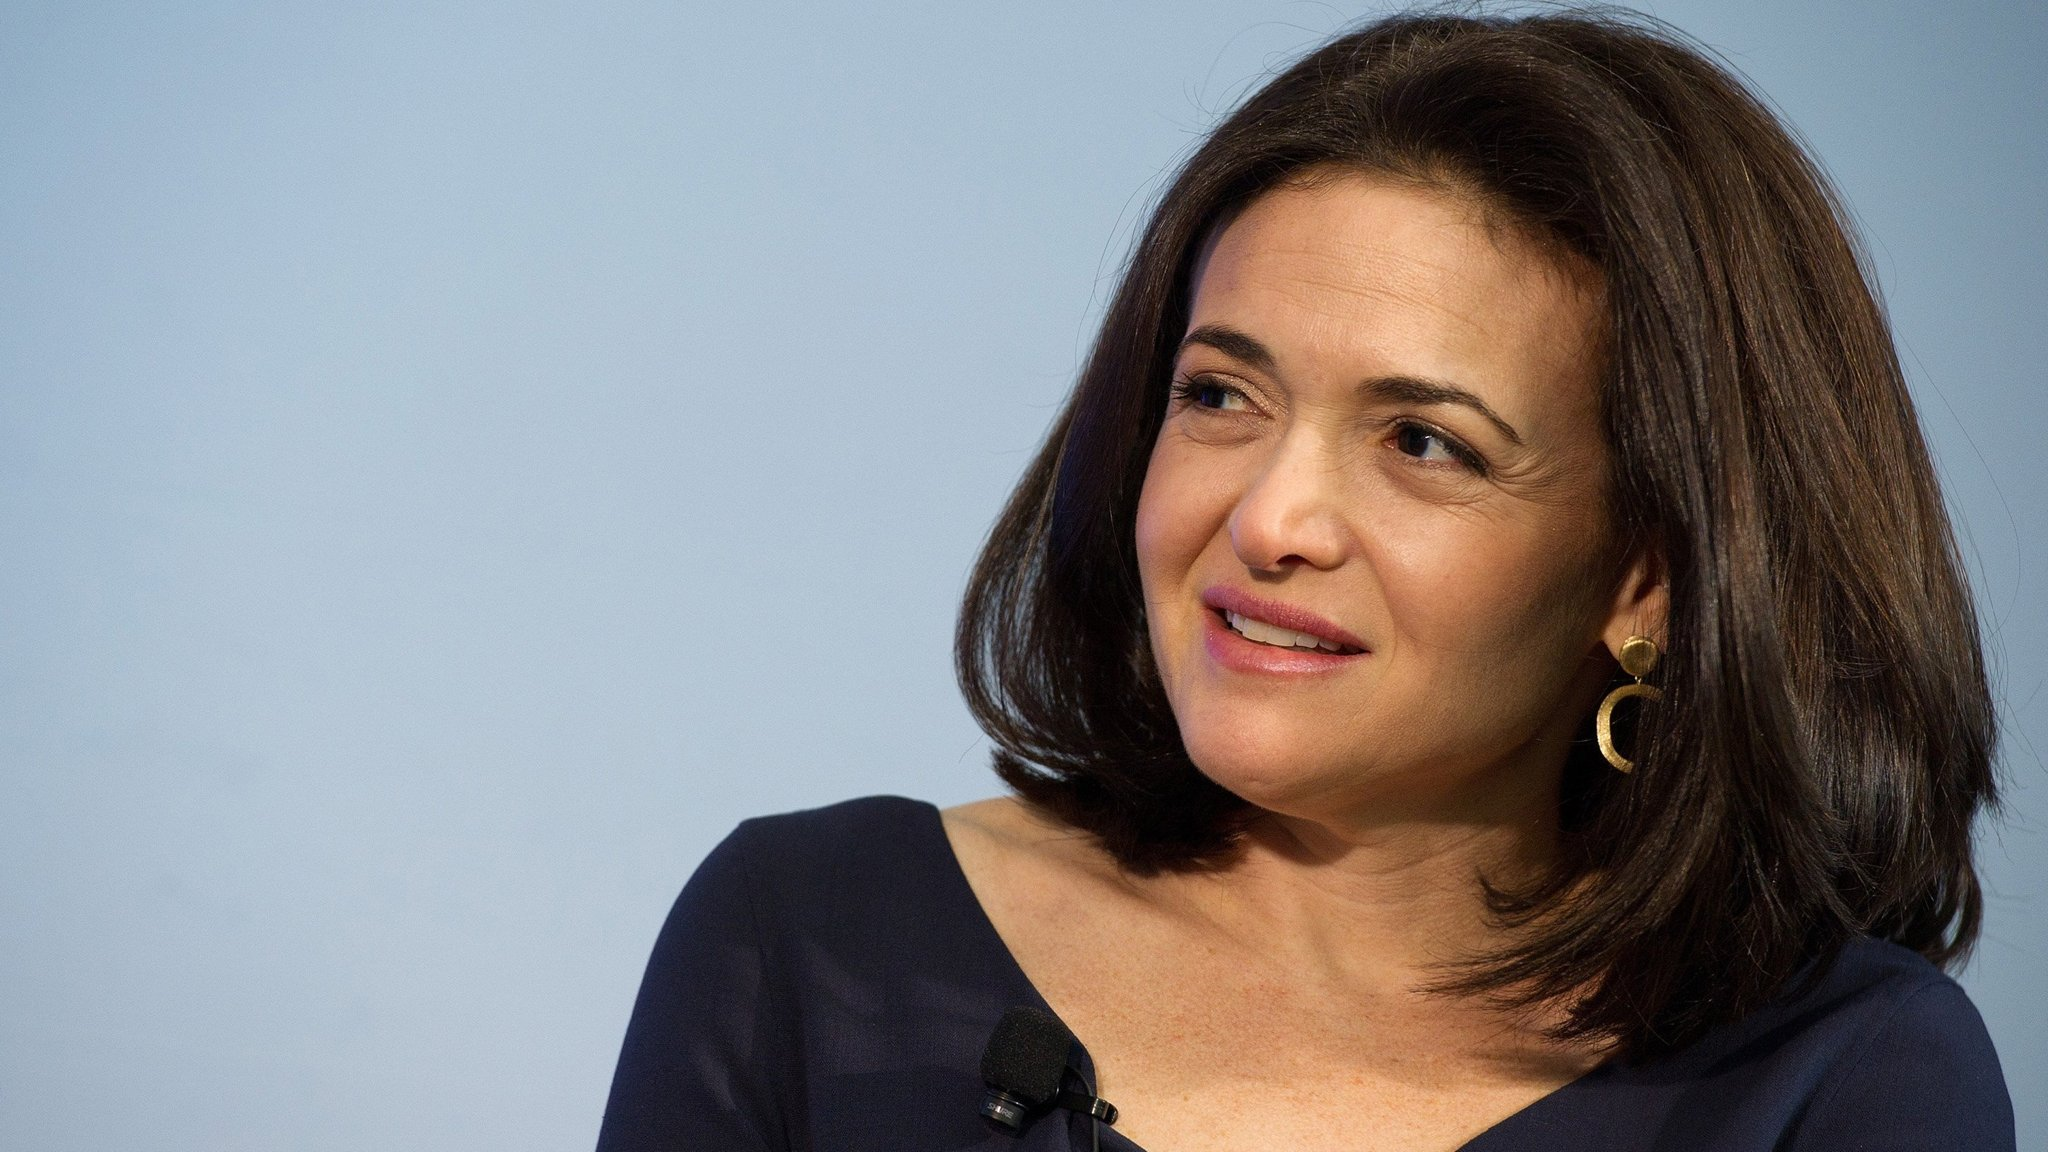 Facebook courts investors on user wellbeing plan